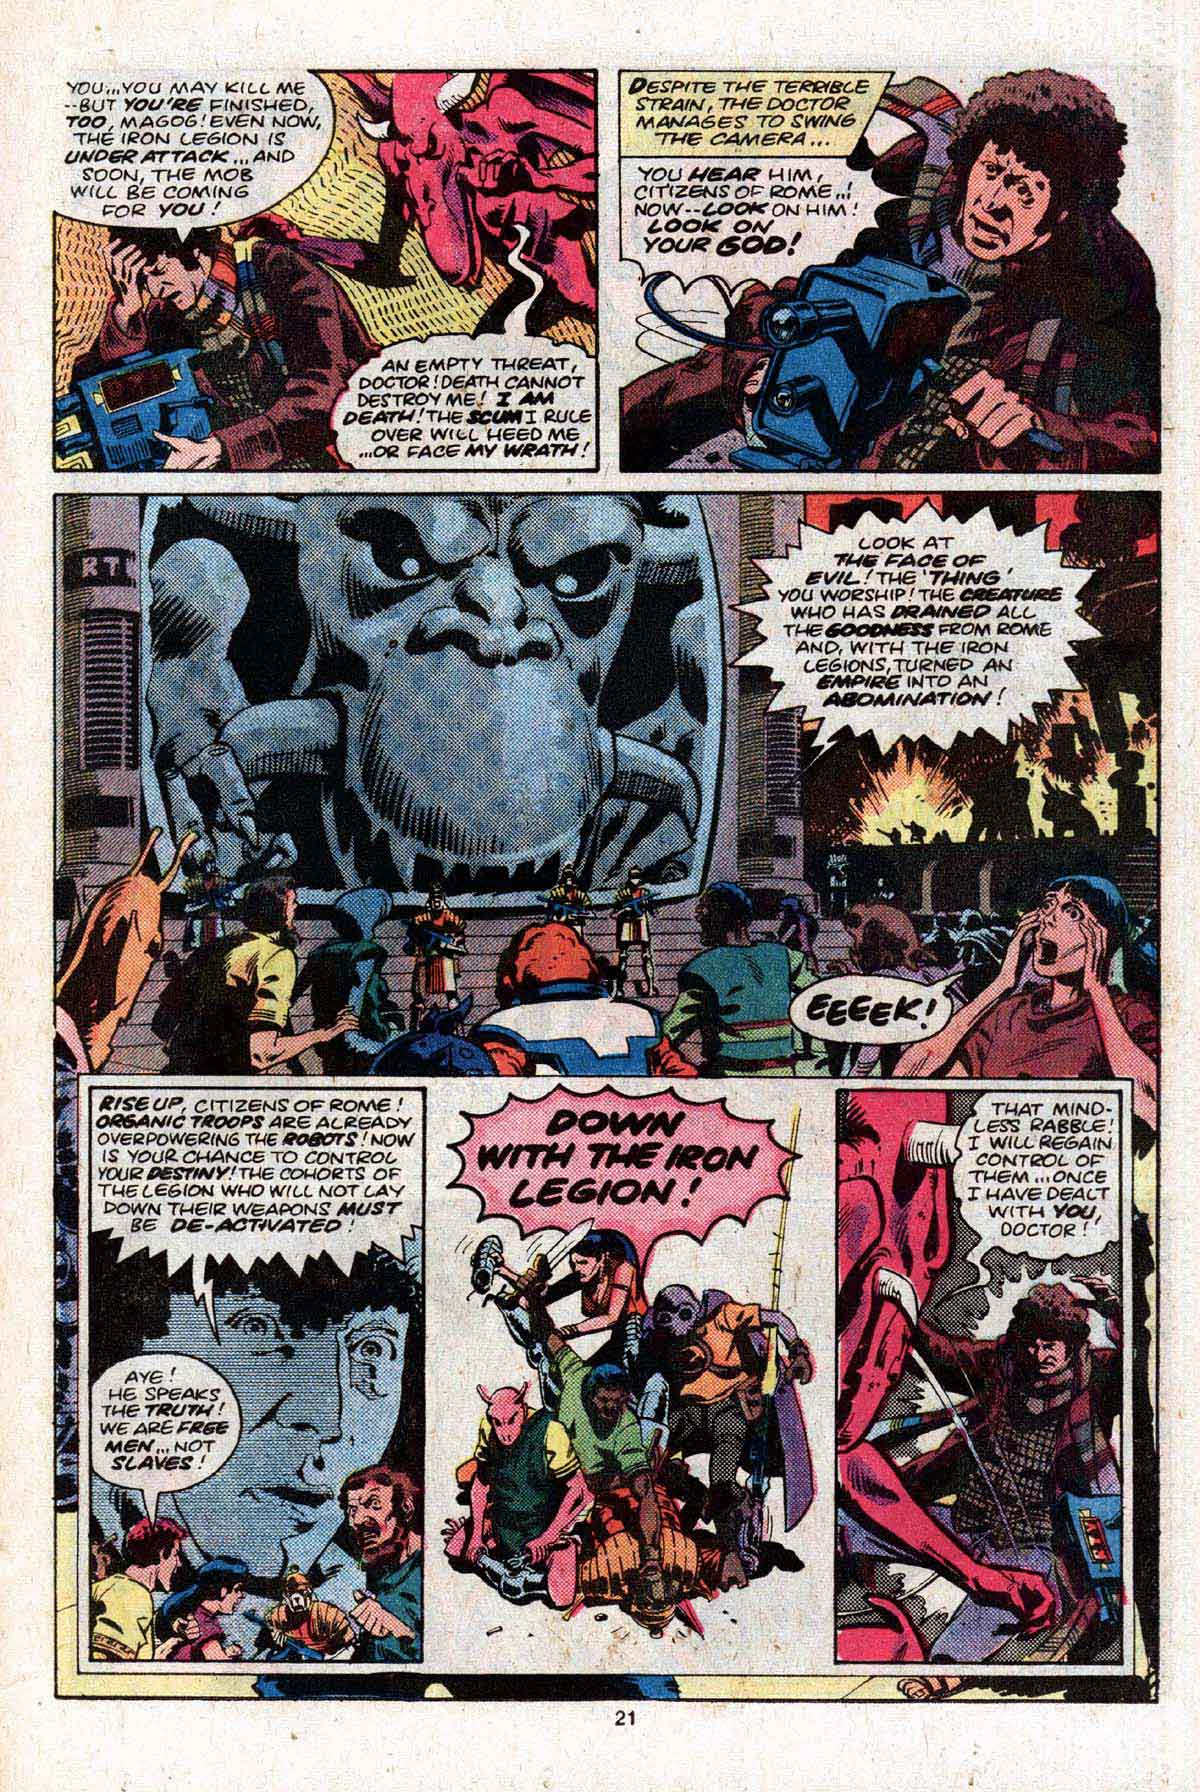 Marvel Premiere #58 featuring Doctor Who and the Iron Legion Book Two by Pat Mills & Dave Gibbons!